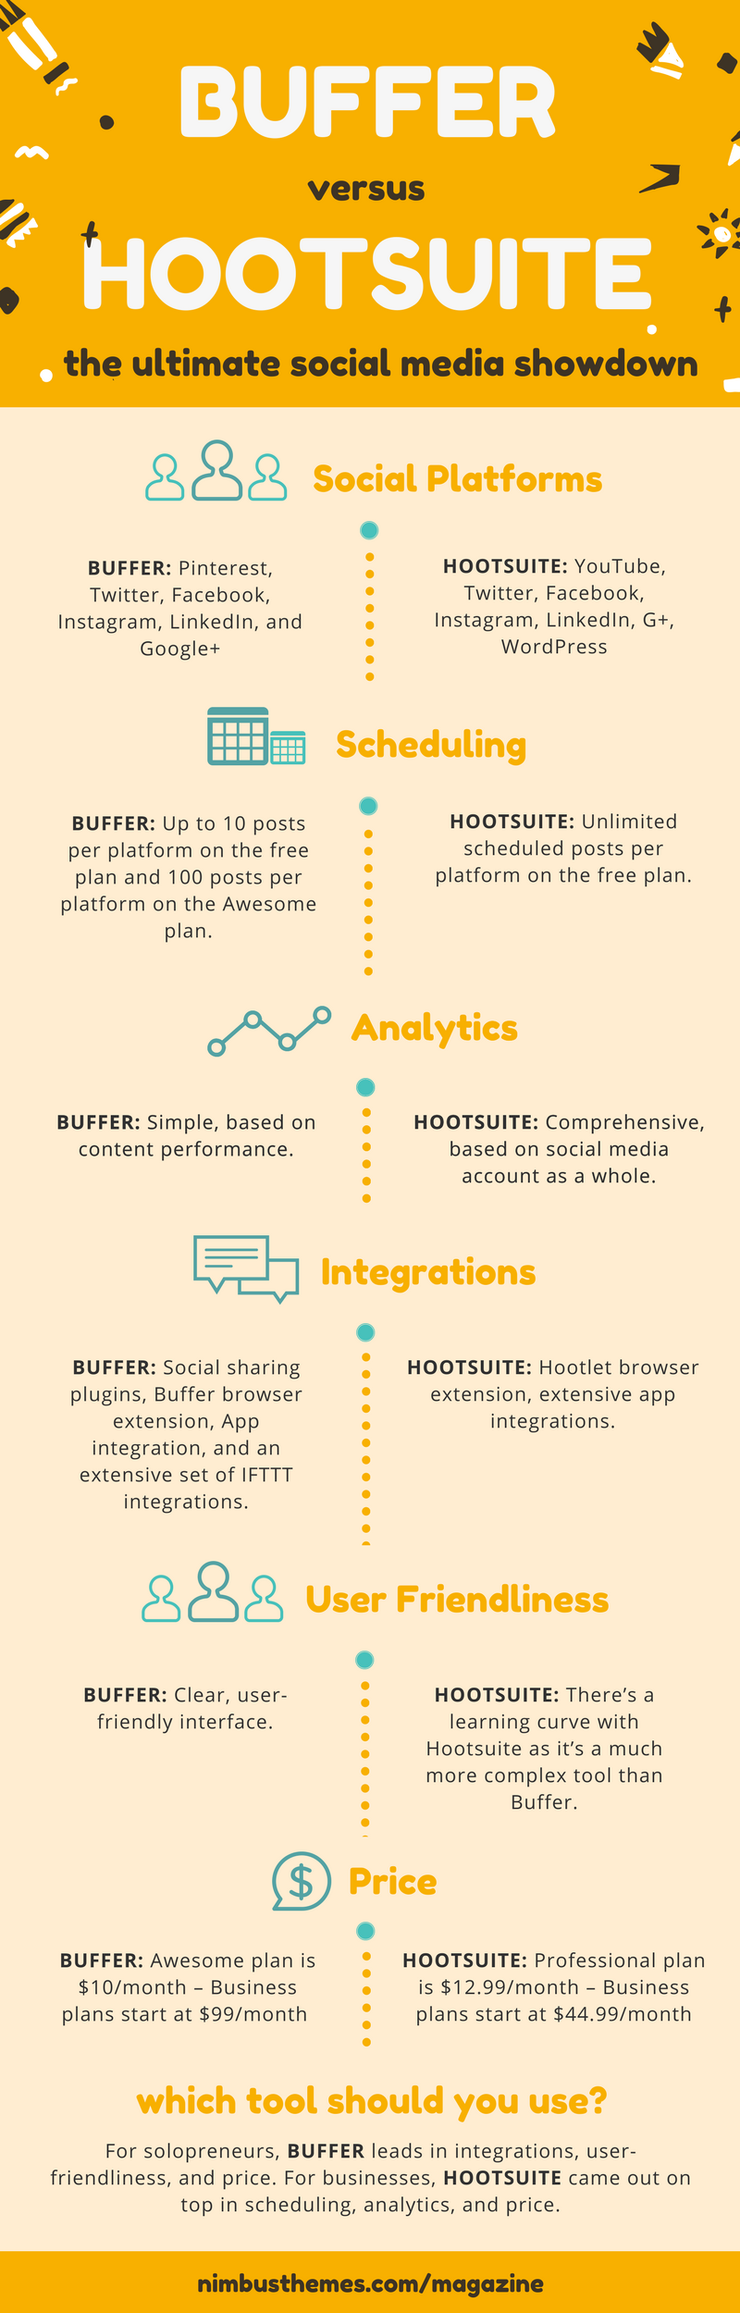 Buffer vs. Hootsuite